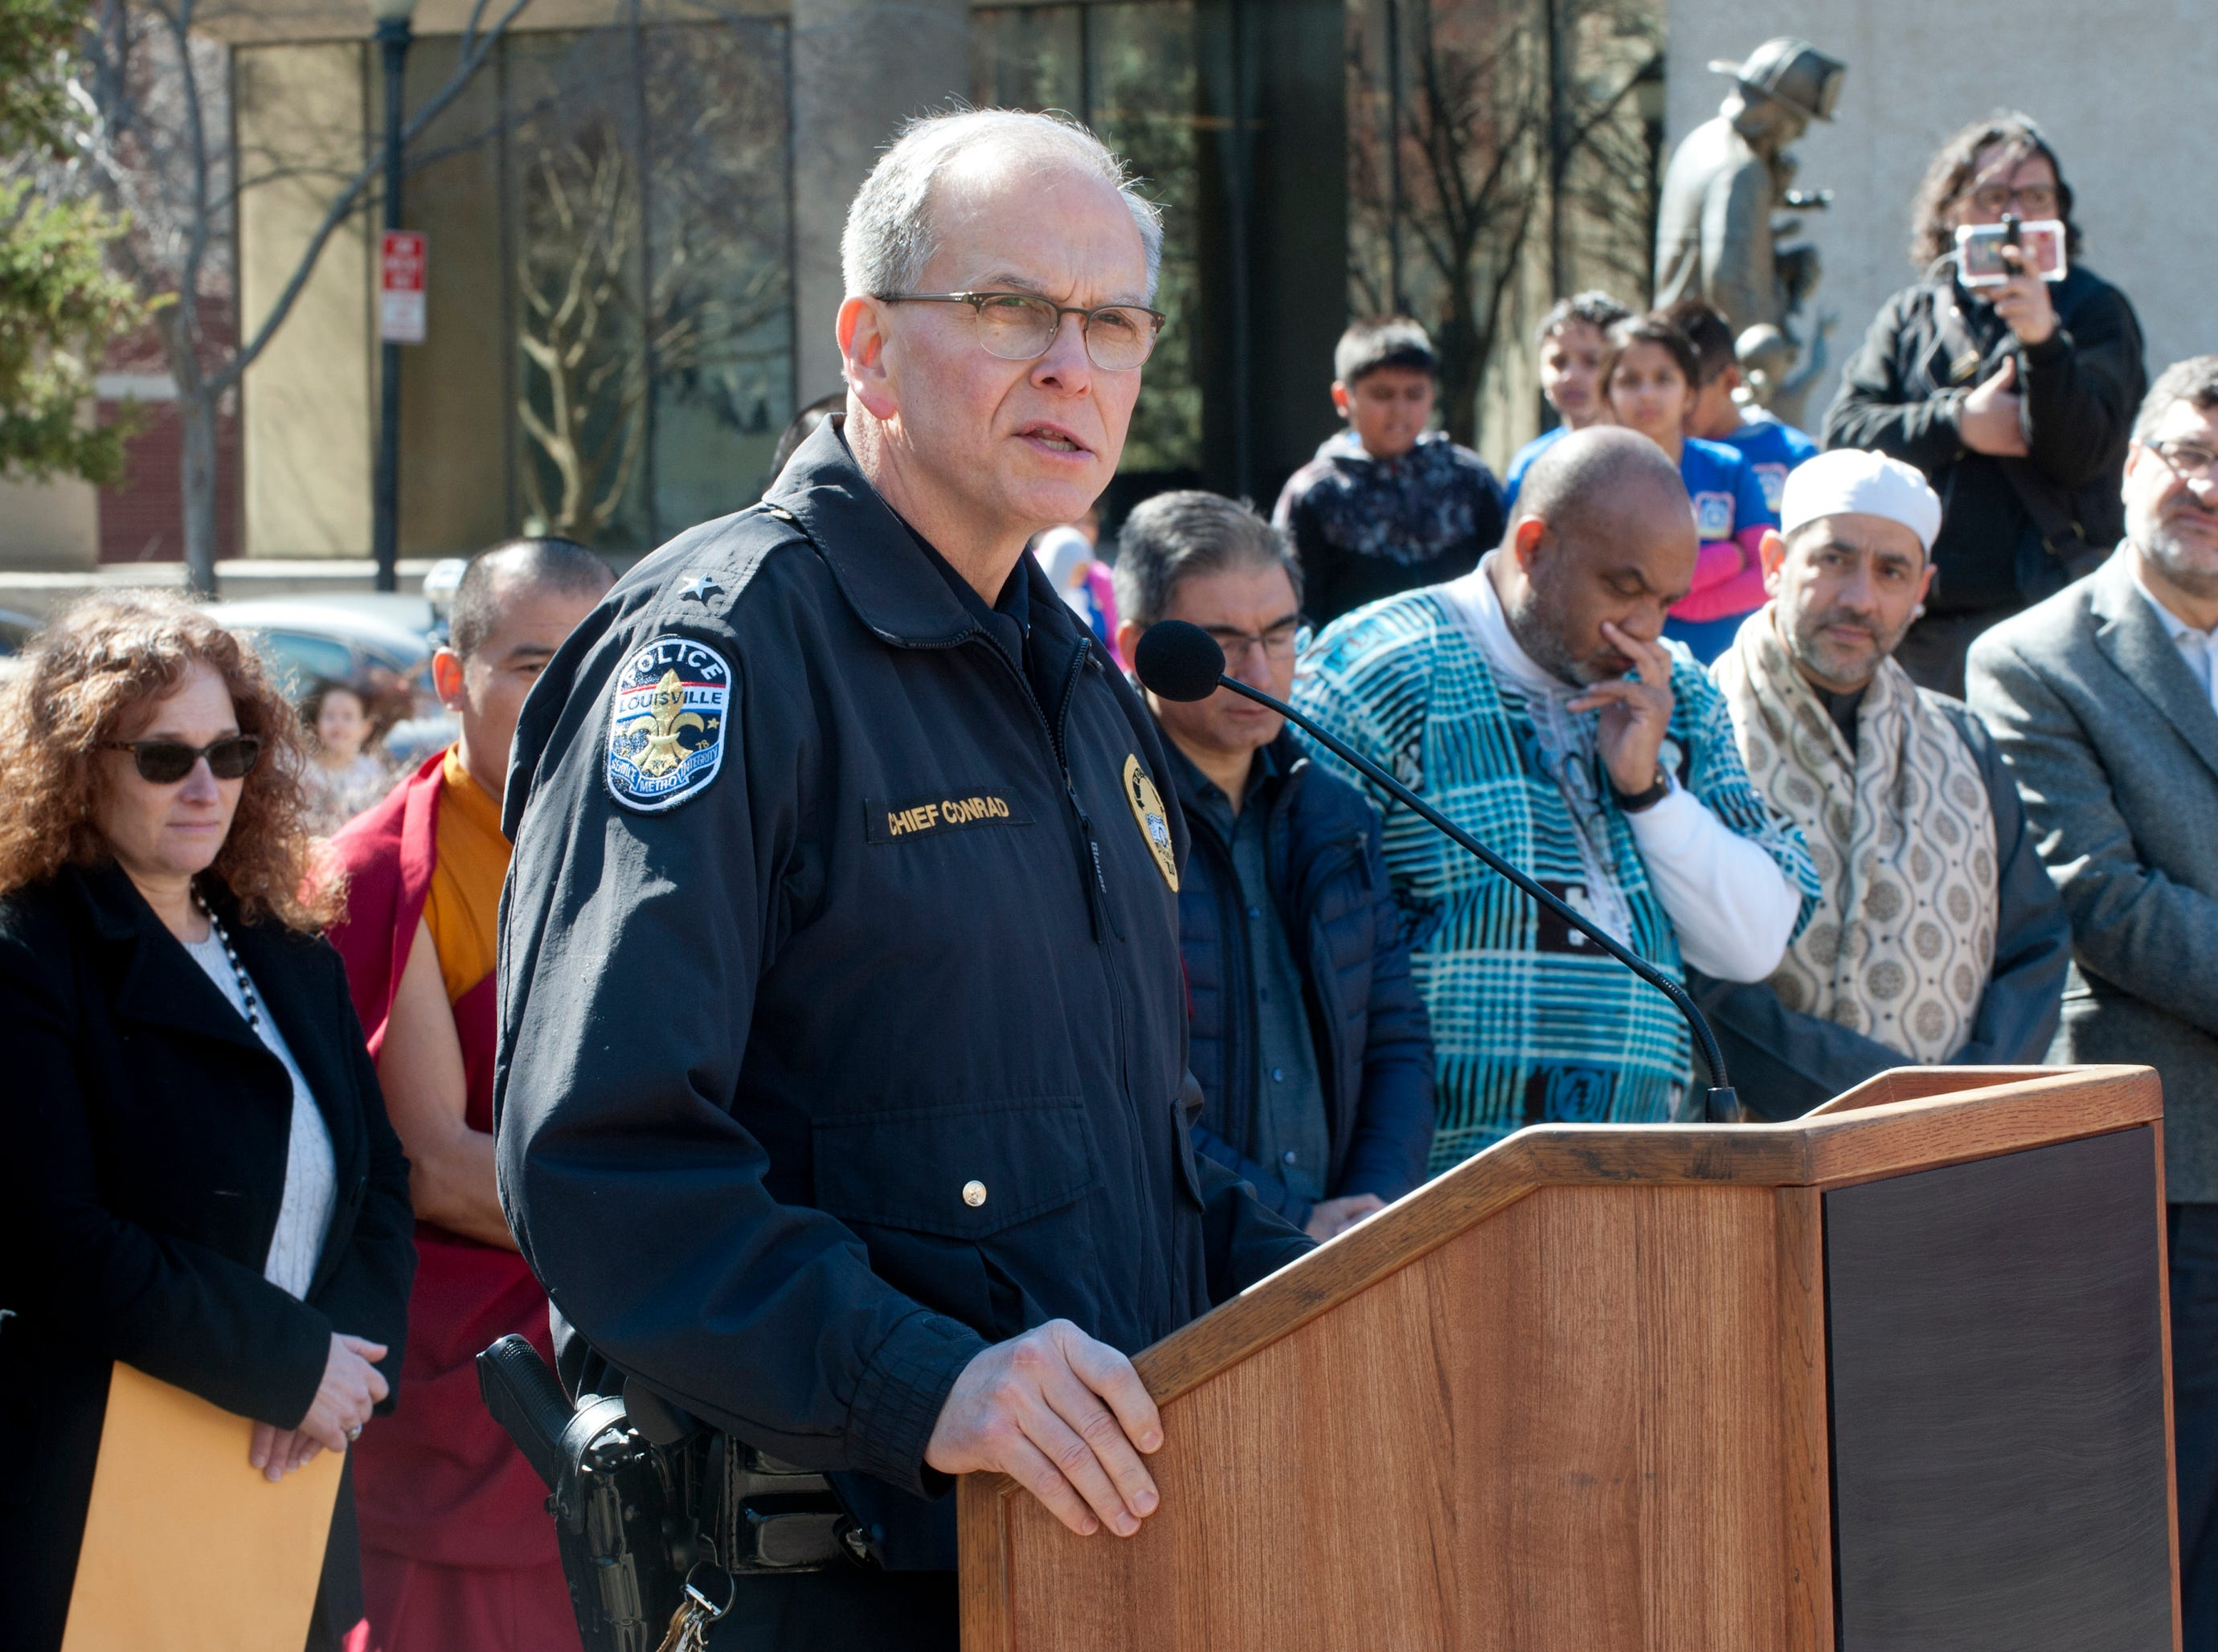 Louisville Metro Police Chief Steve Conrad speaks at the vigil.